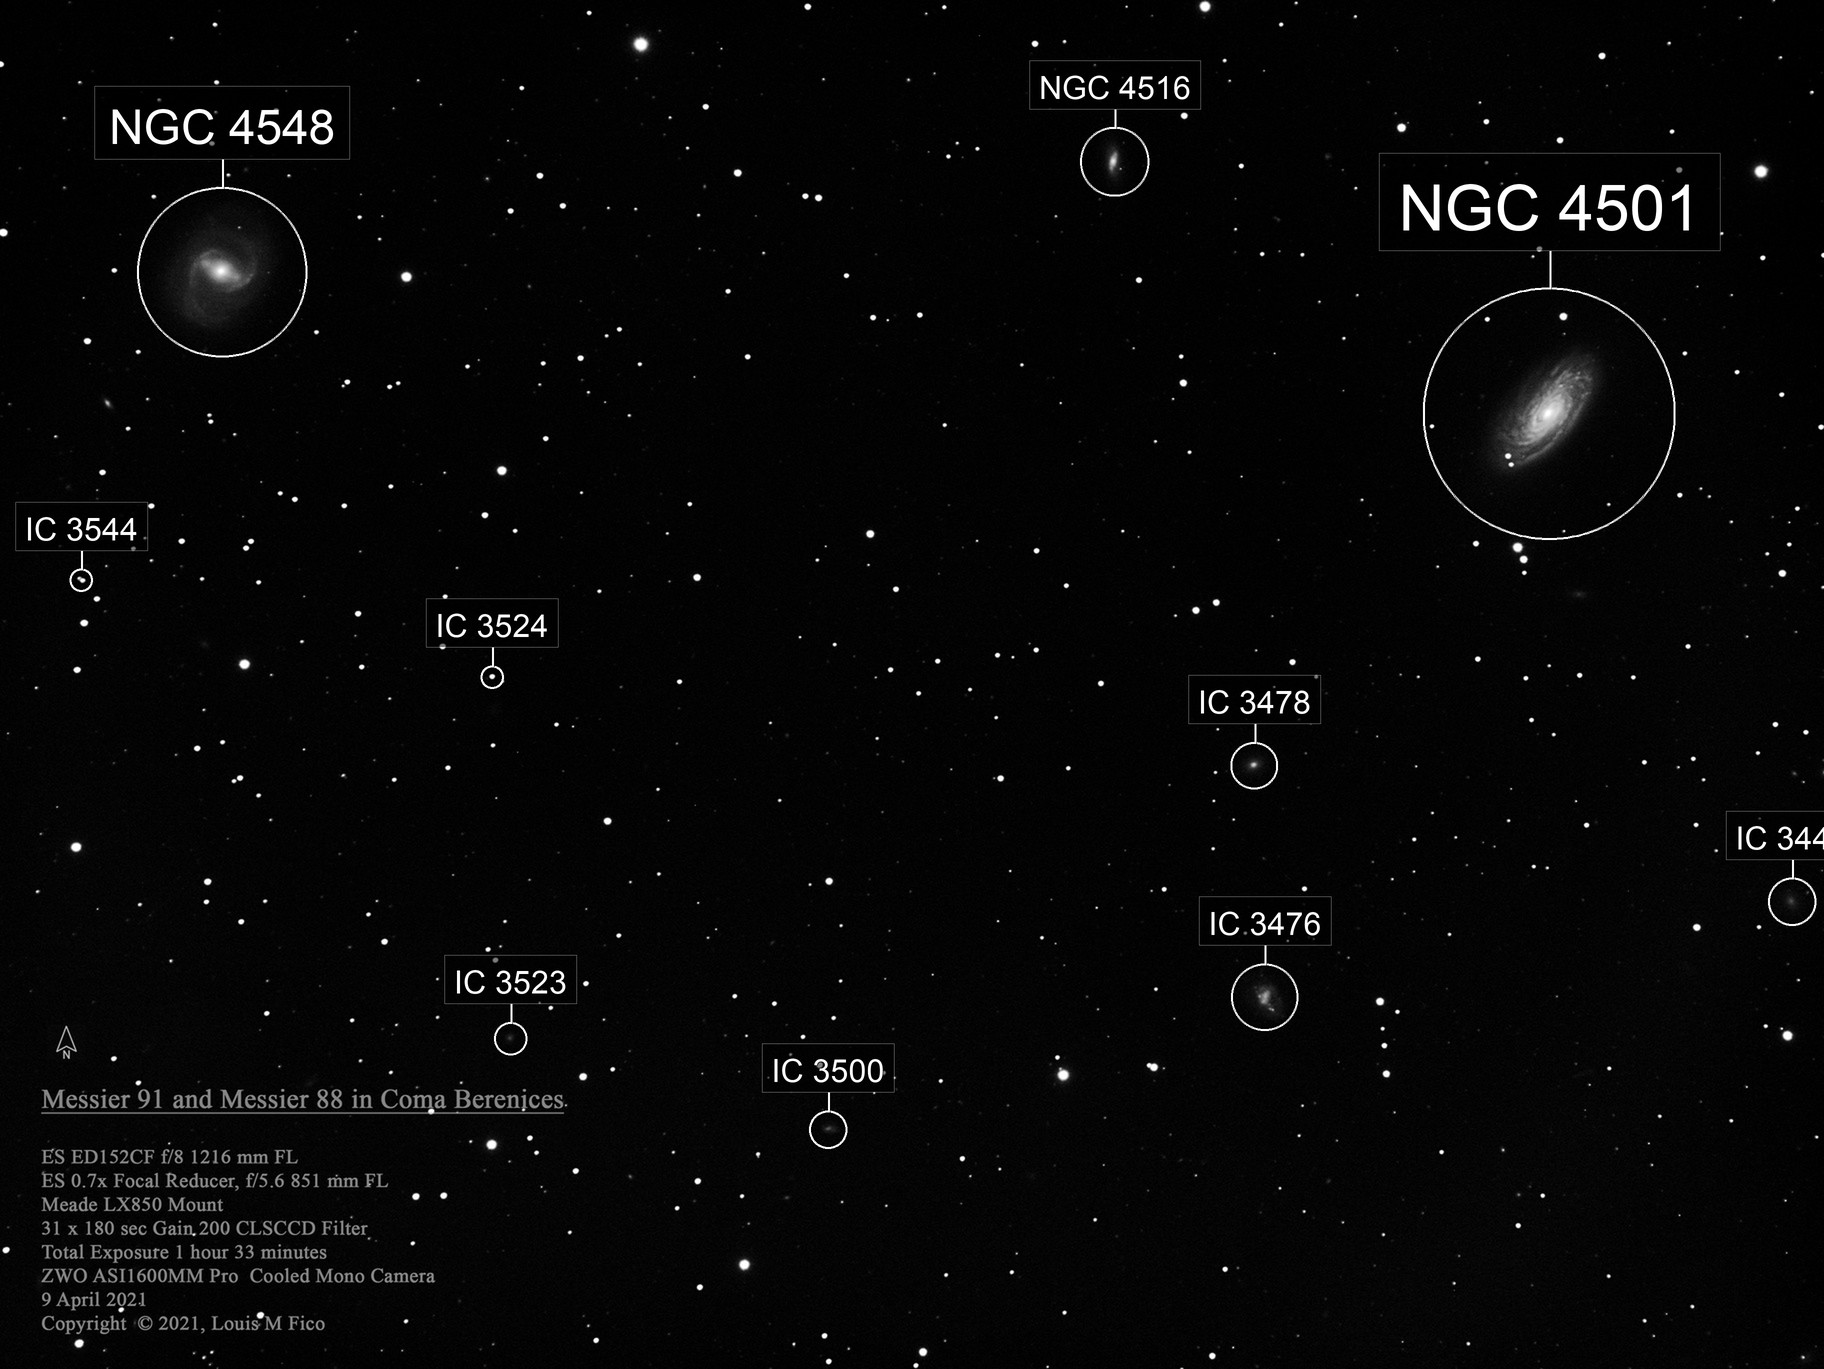 Messier 91 and Messier 88